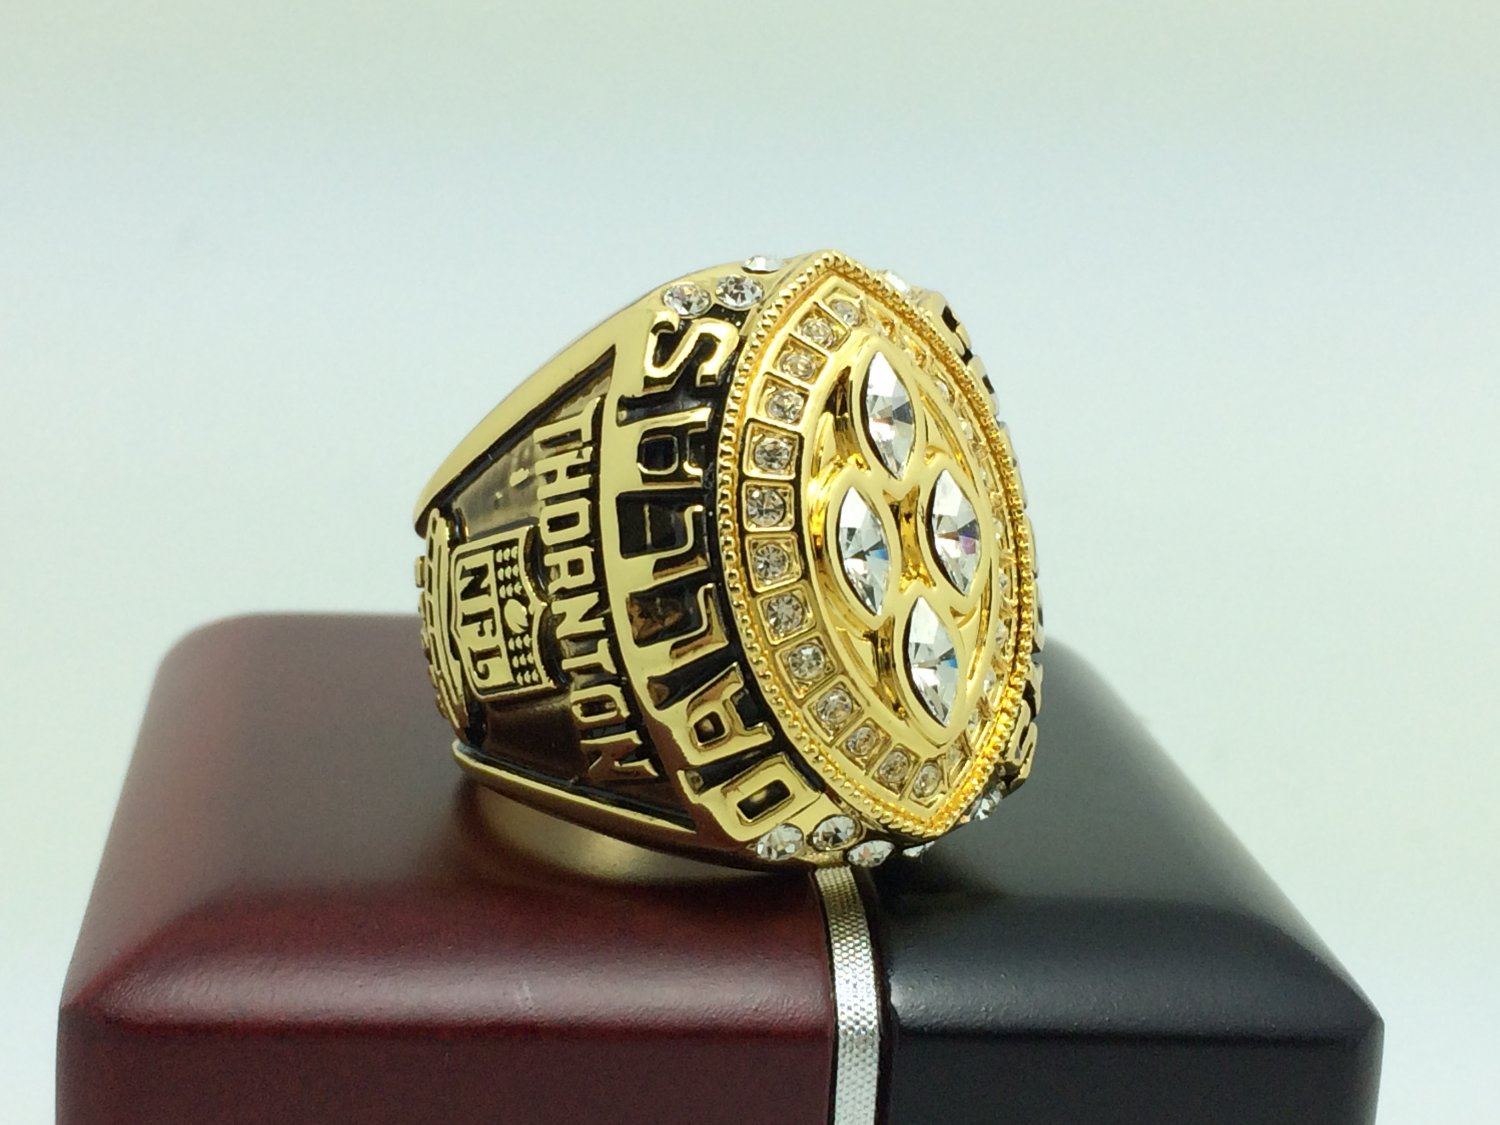 1993 Dallas Cowboys super bowl Championship Ring 11 Size With wooden box